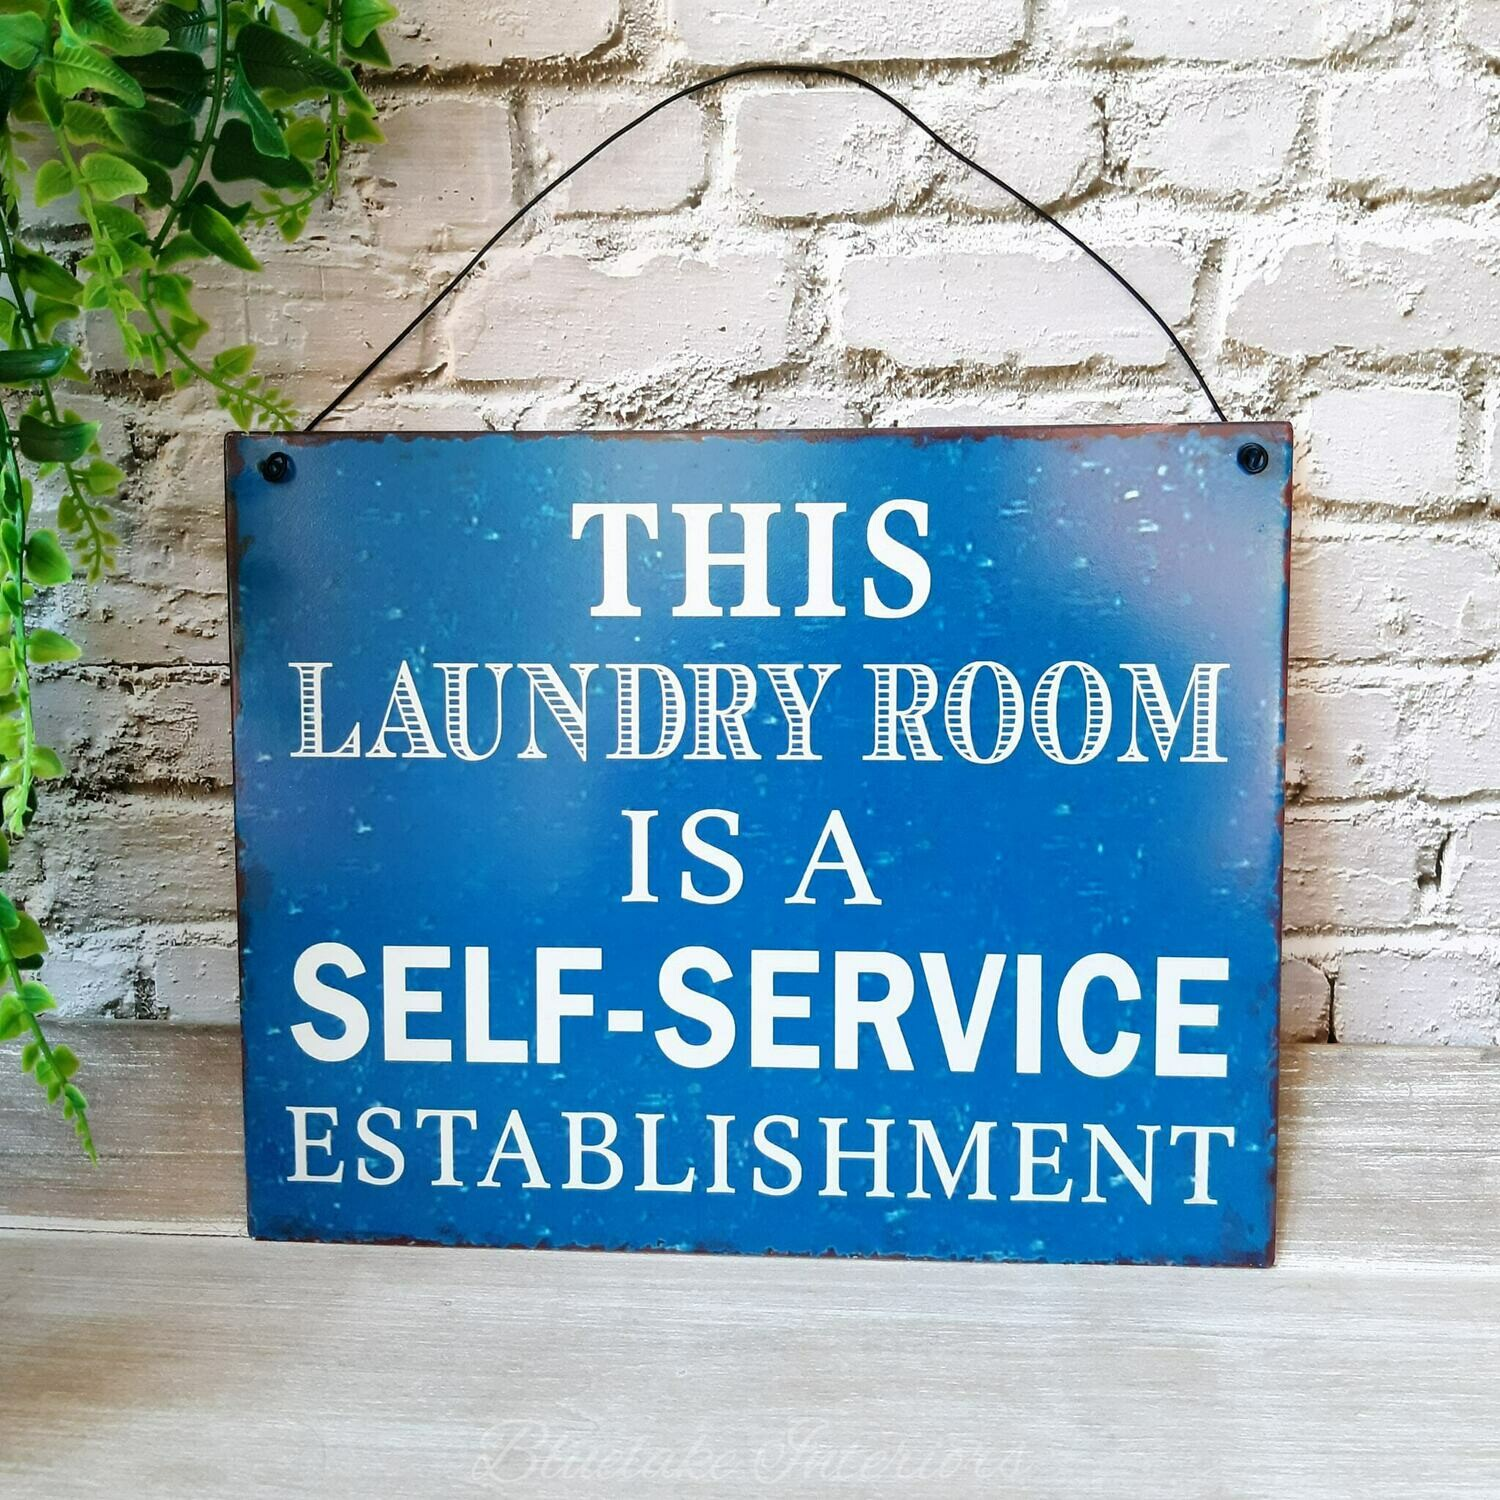 This Laundry Room Is A Self-Service Establishment Blue Metal Sign